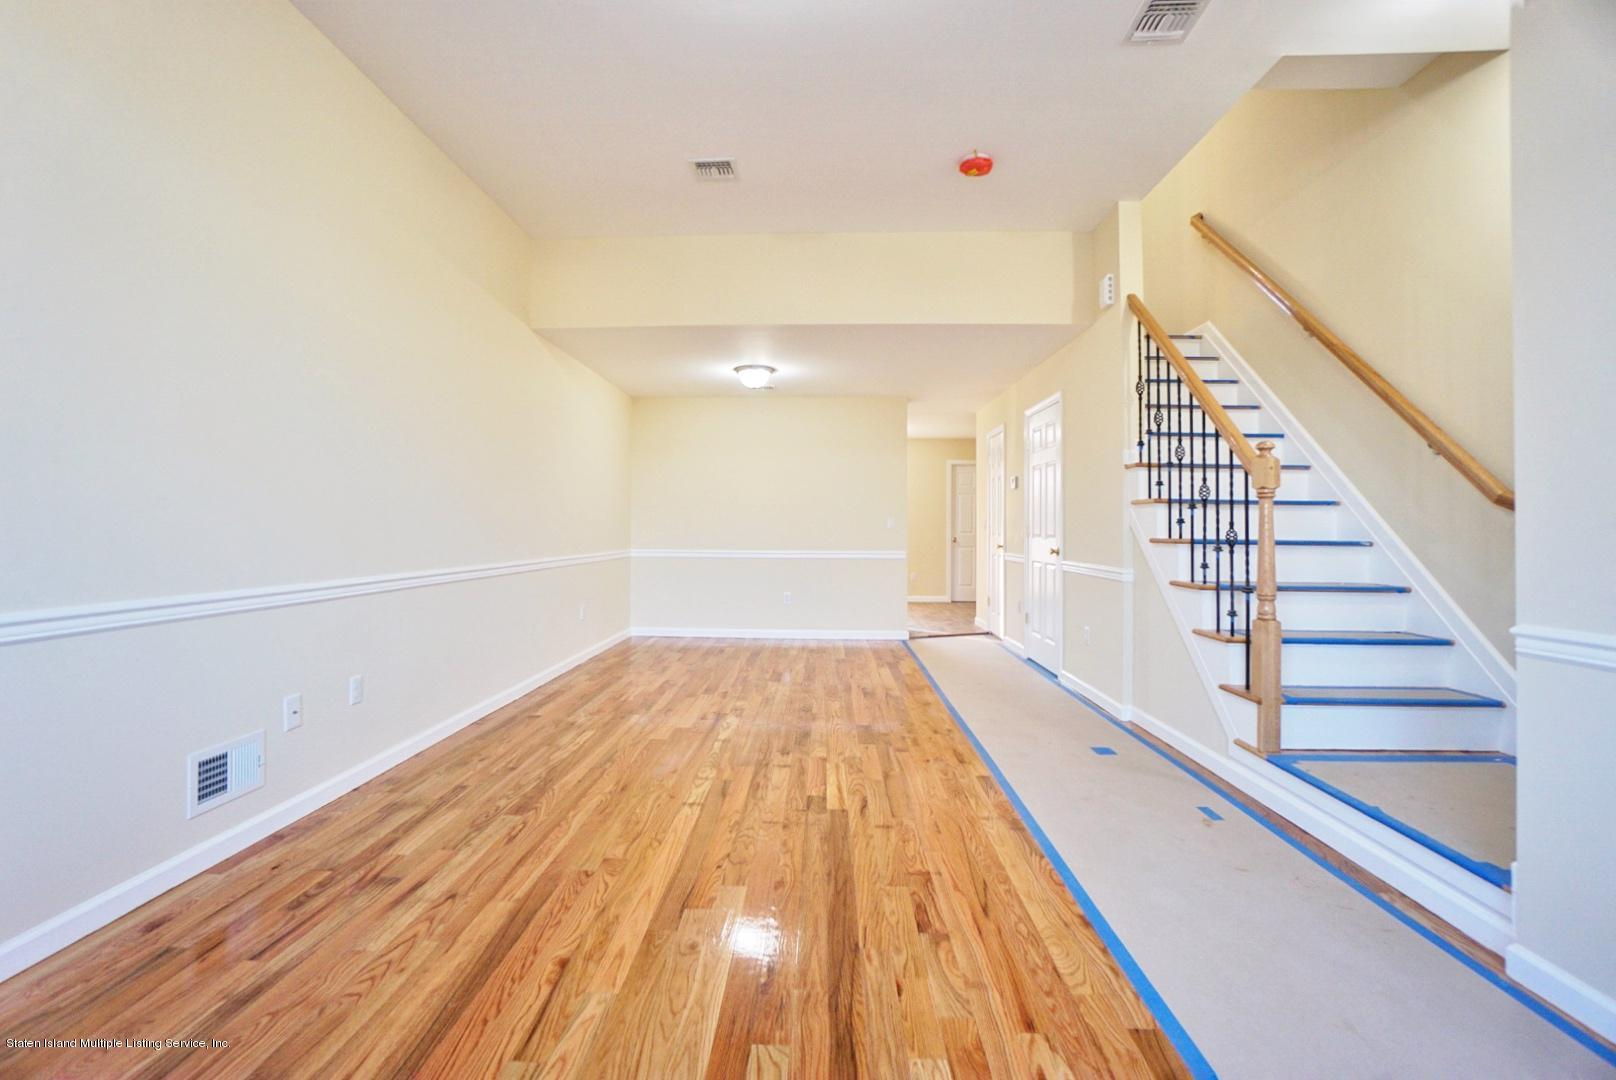 Single Family - Attached 34 Bamberger Lane  Staten Island, NY 10312, MLS-1135521-3